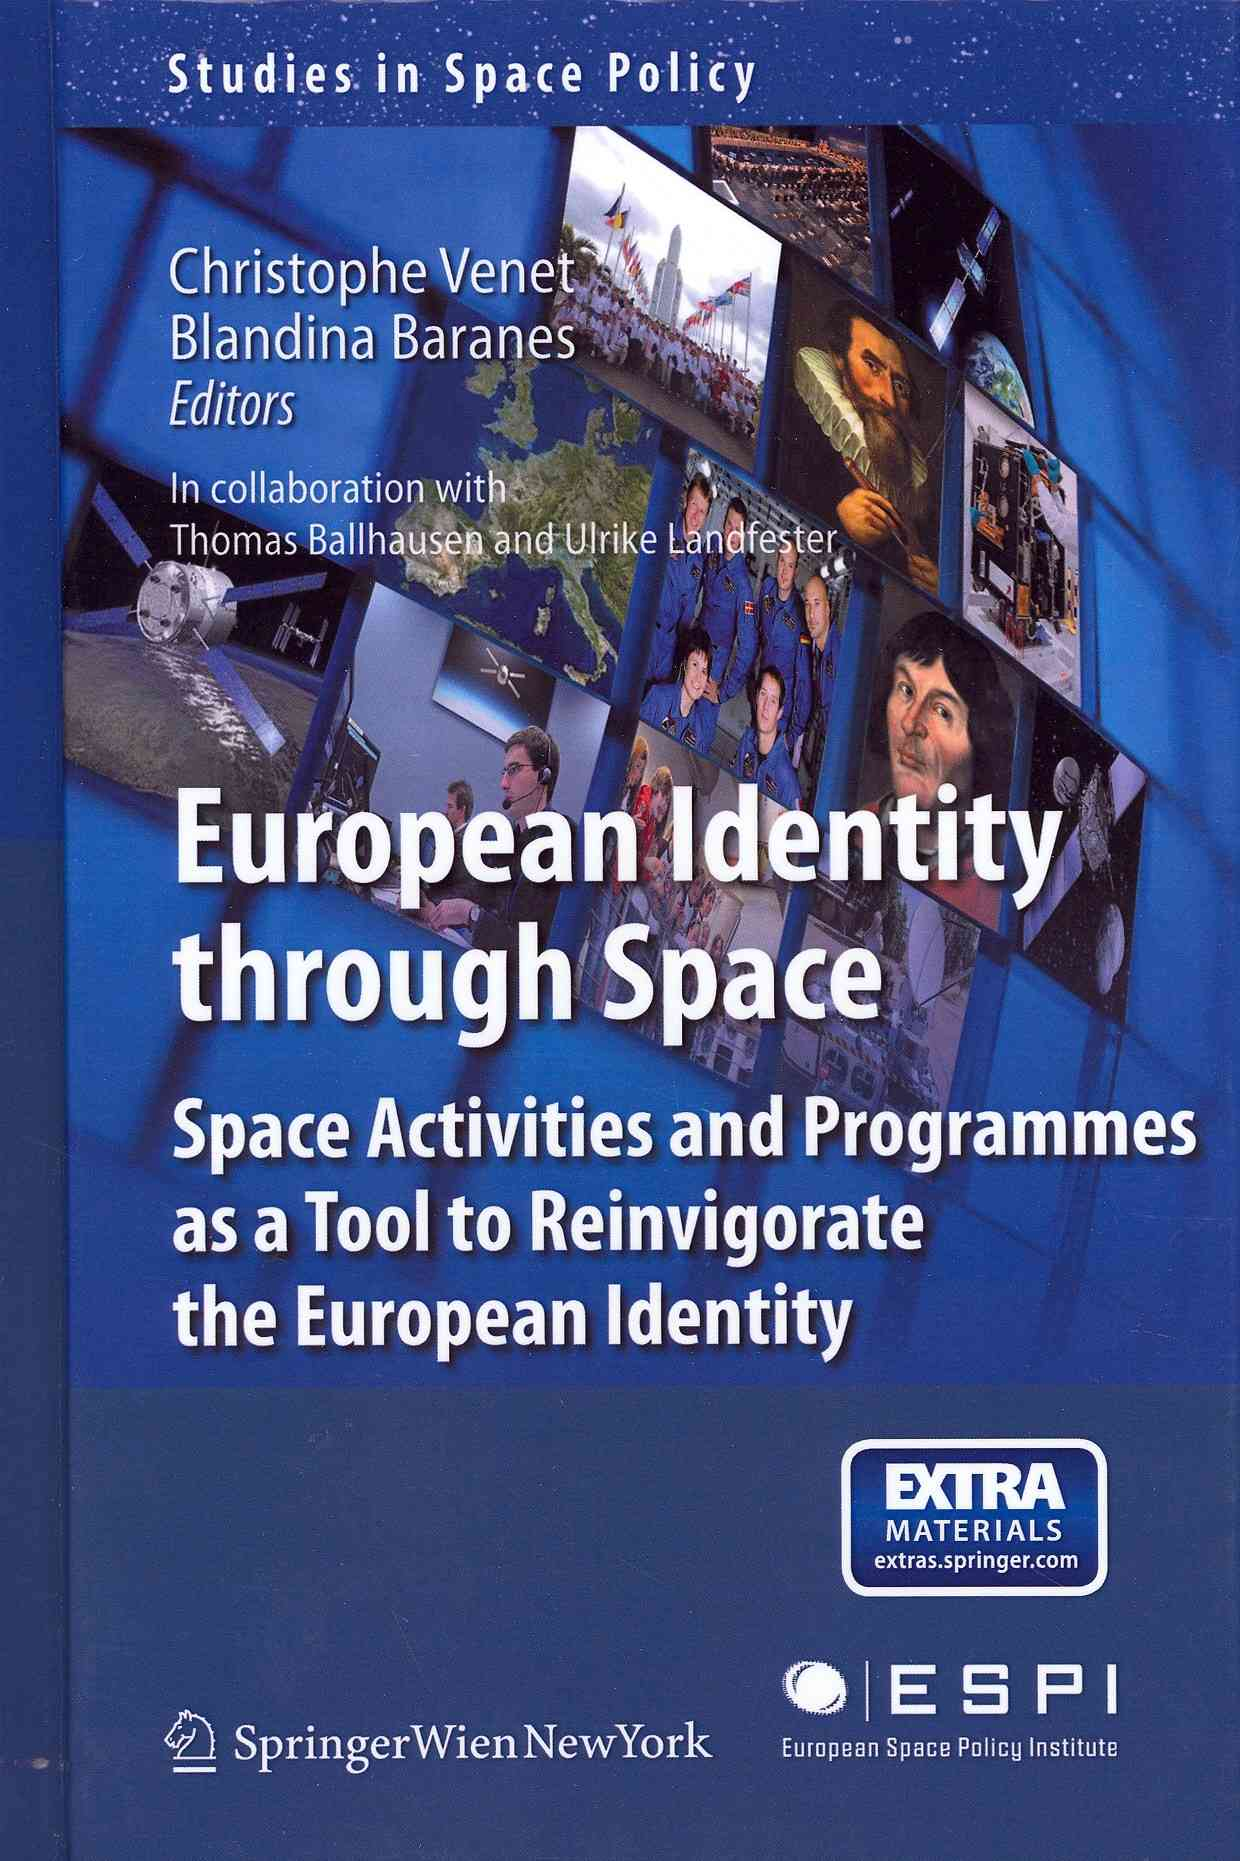 Building European Identity Through a Joint Space Program By Baranes, Blandina (EDT)/ Venet, Christophe (EDT)